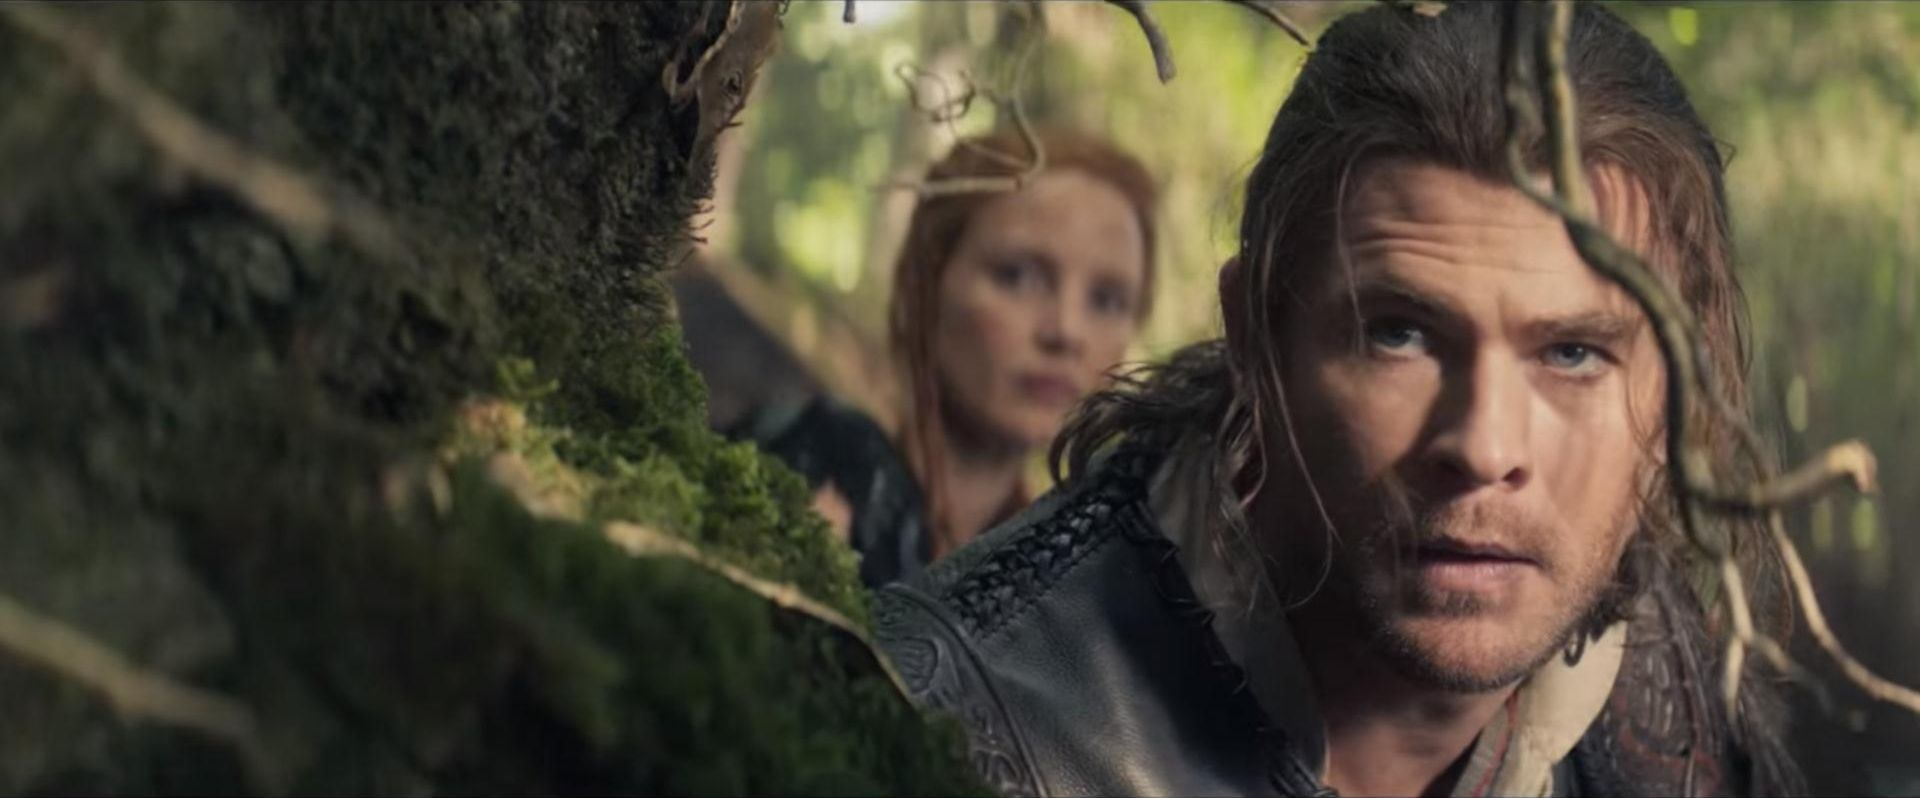 VIDEO: FANOVI ZABORAVILI NA SNJEGULJICU Pogledajte novi trailer za 'The Huntsman: Winter's War'